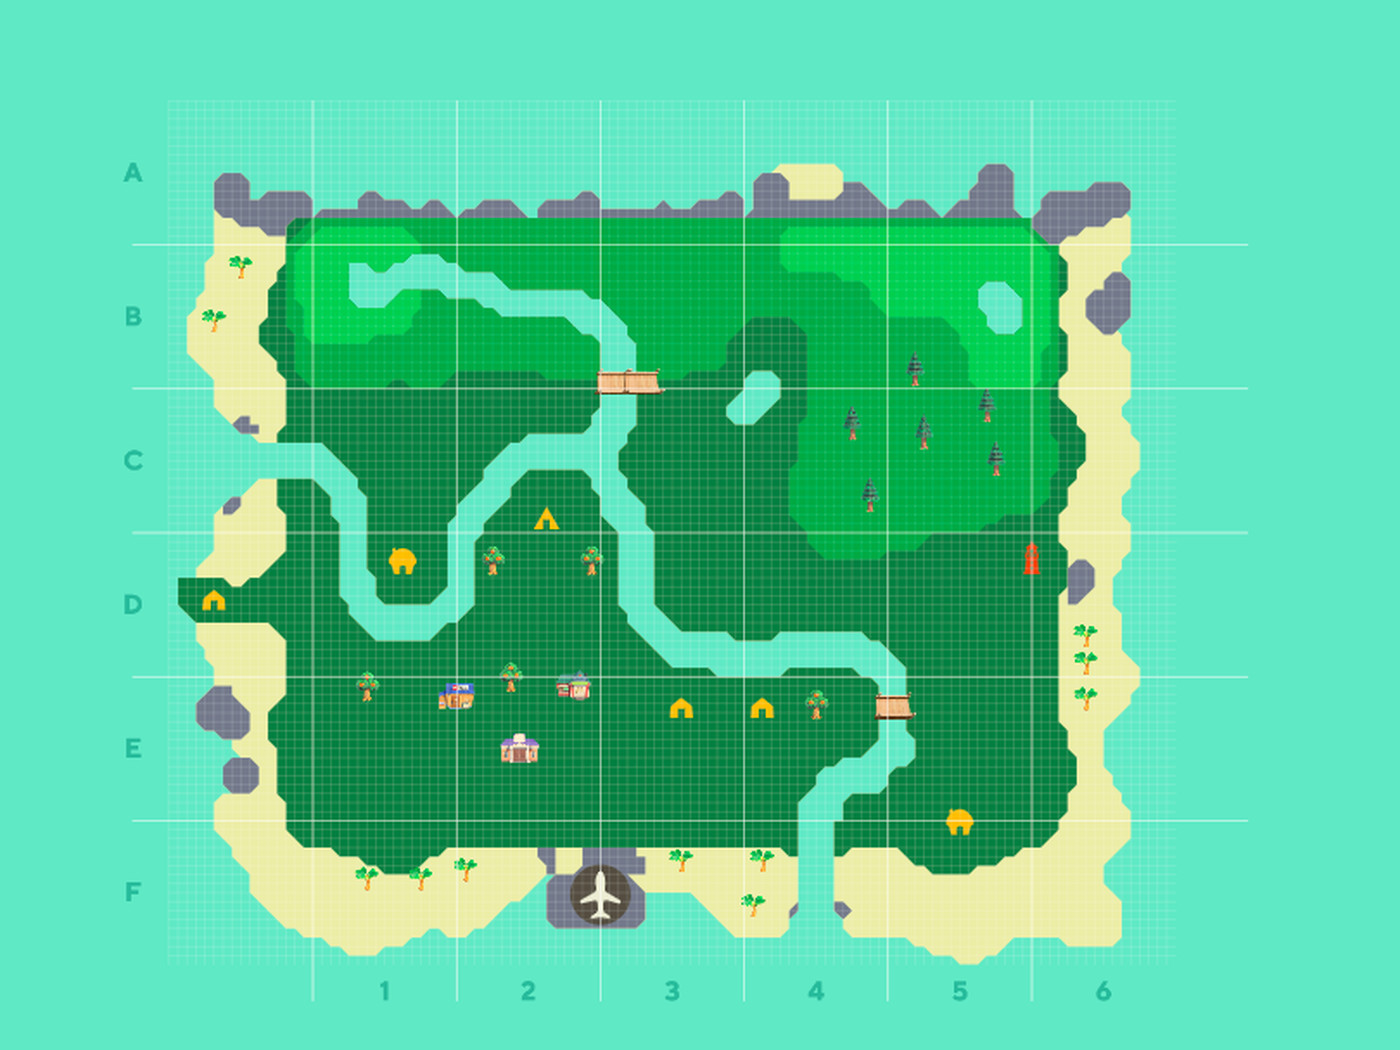 Start Planning Your Animal Crossing New Horizons Island With This